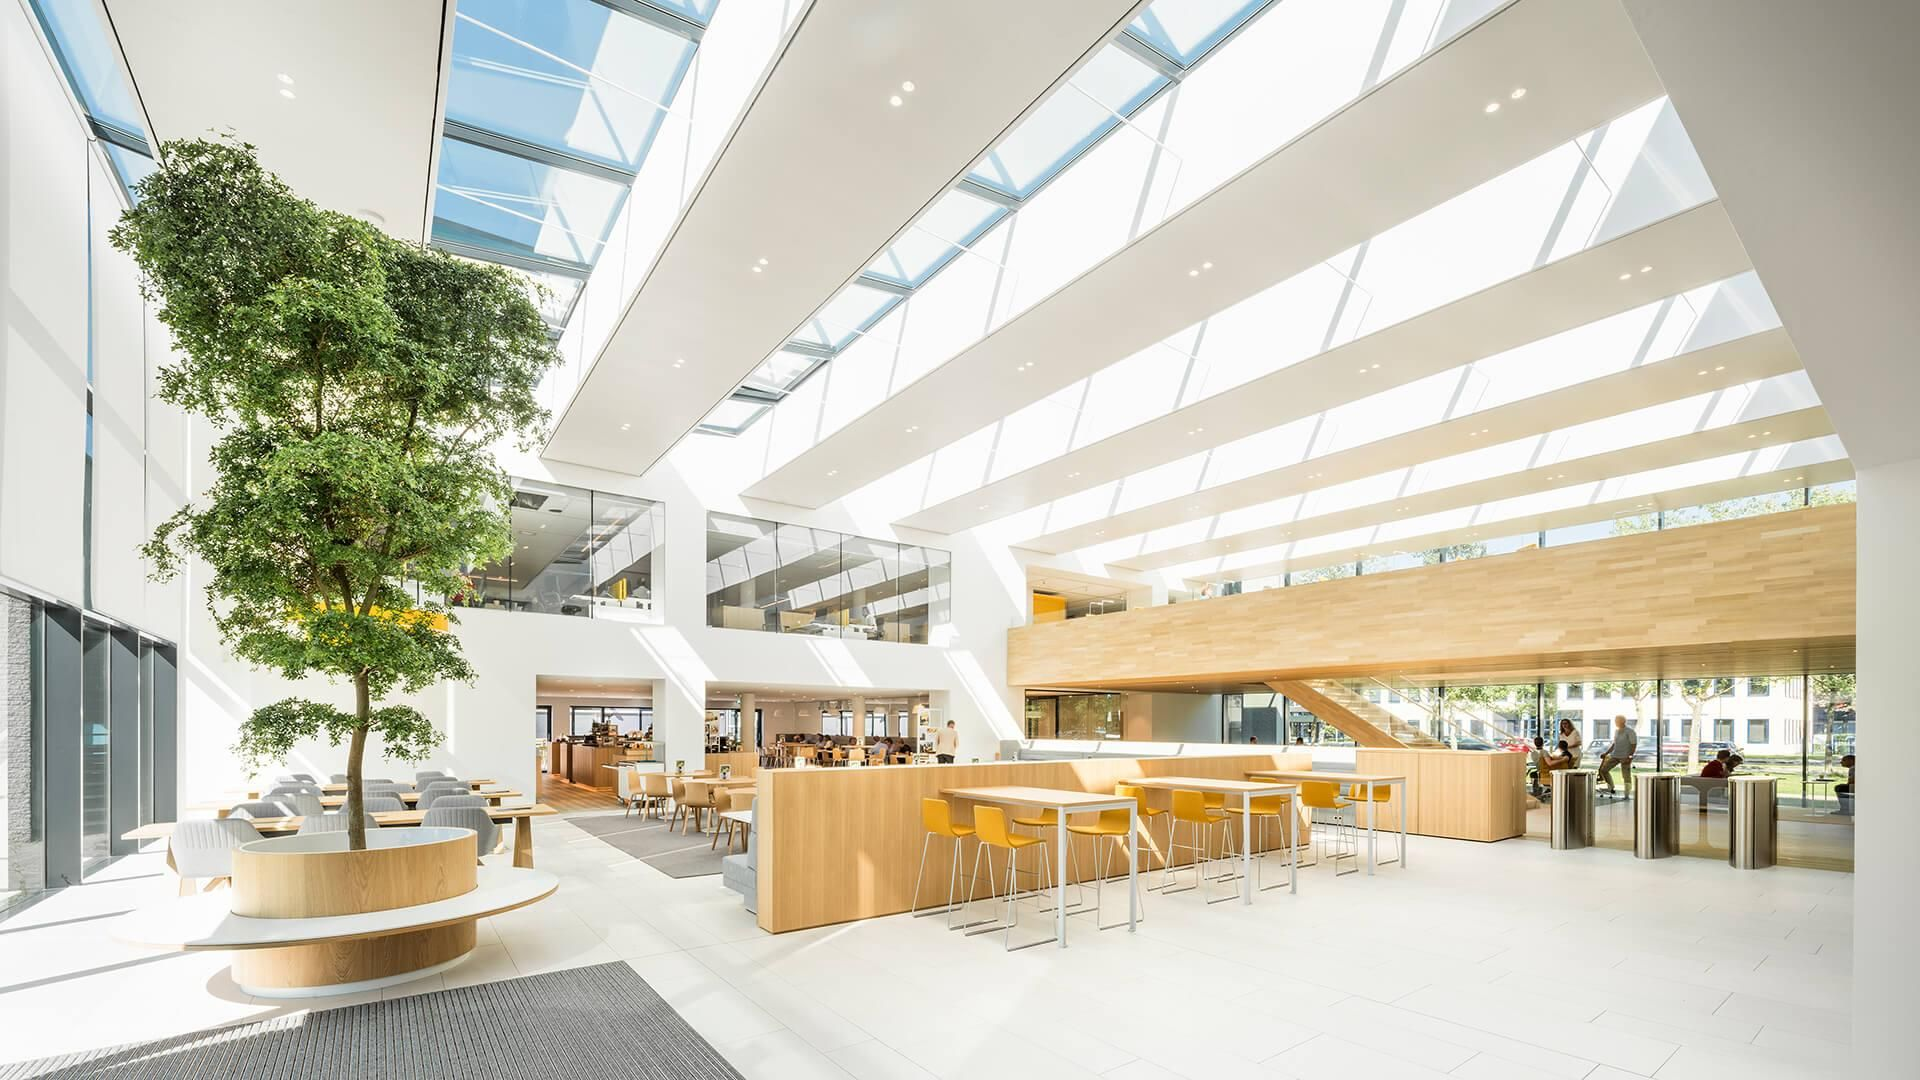 Hofmandujardin Adds Vitality Points To Health Insurer Onvz S Hq Corporate Office Design Commercial Office Design Public Library Design